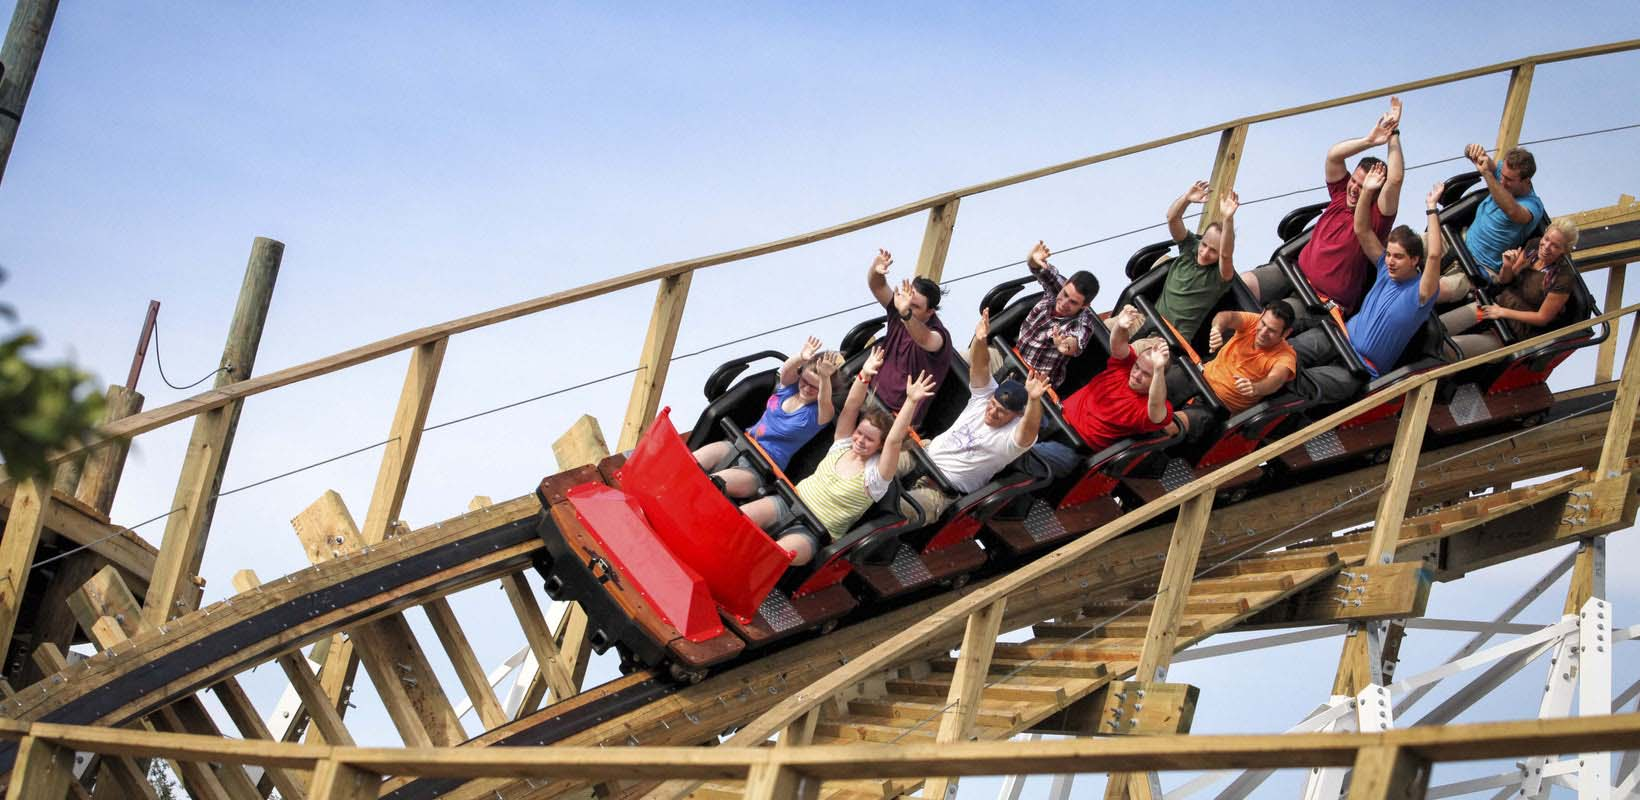 Fun Spot America one-day, one-park pass